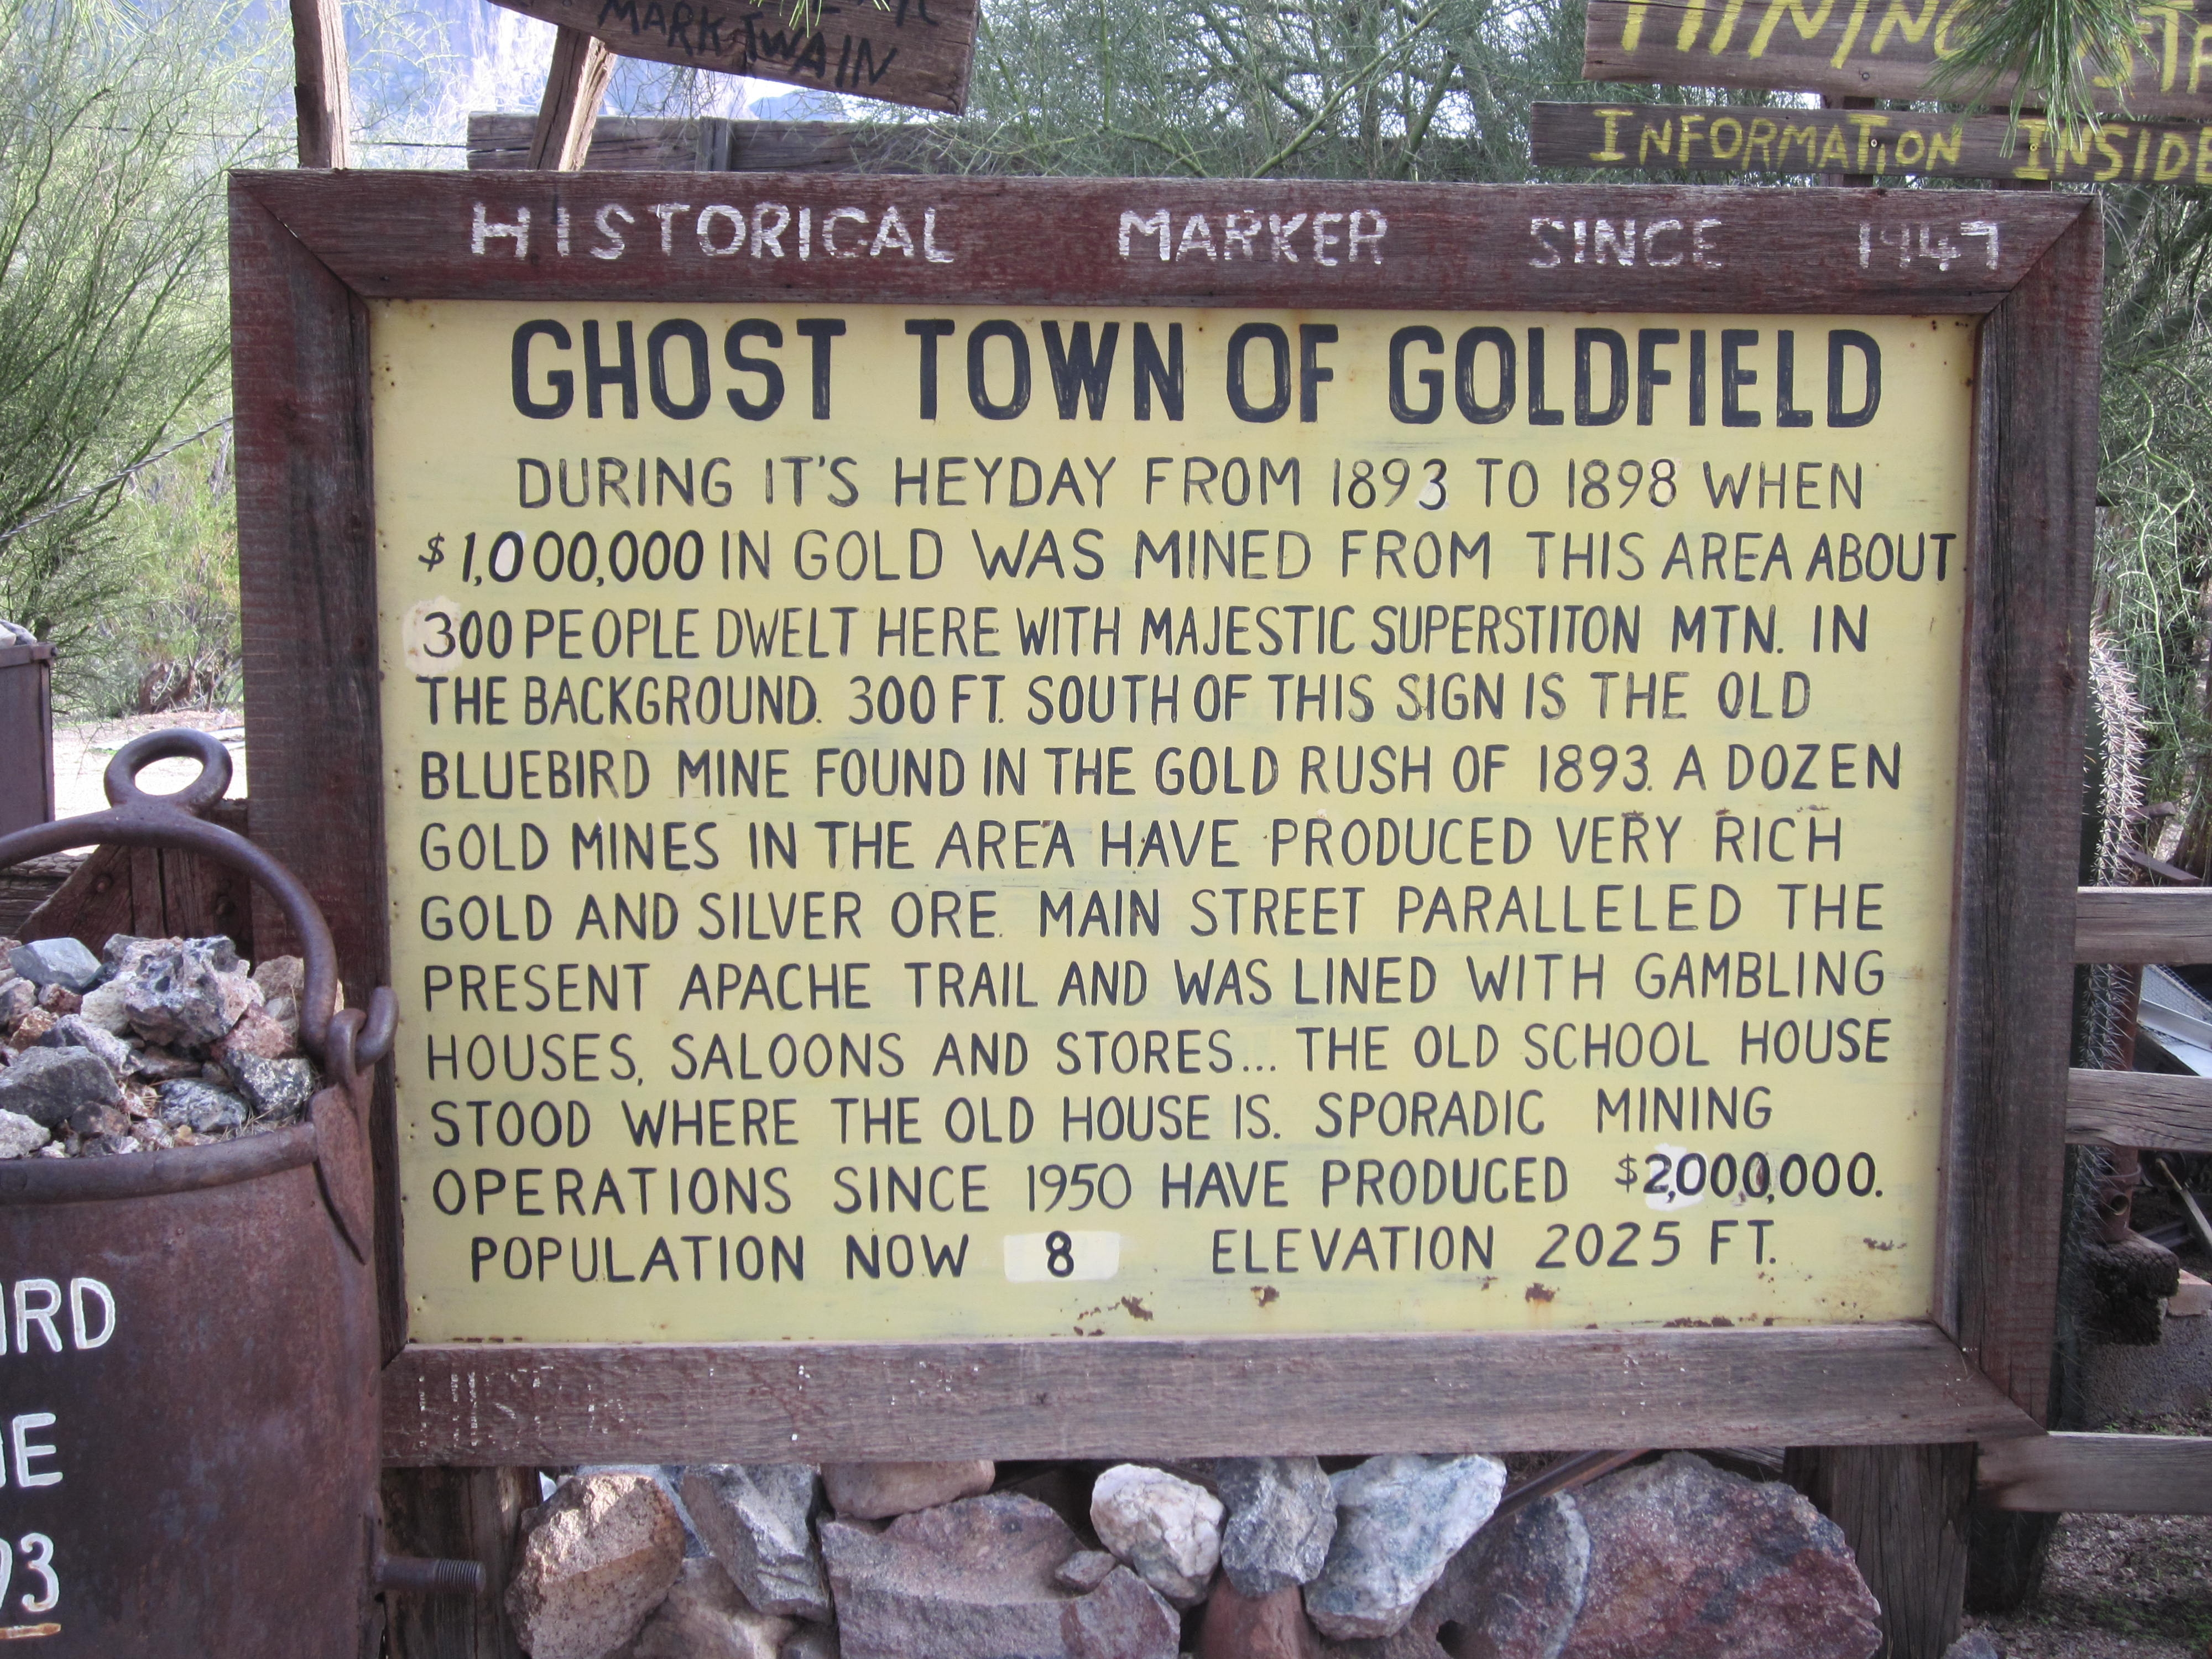 Ghost Town of Goldfield Marker